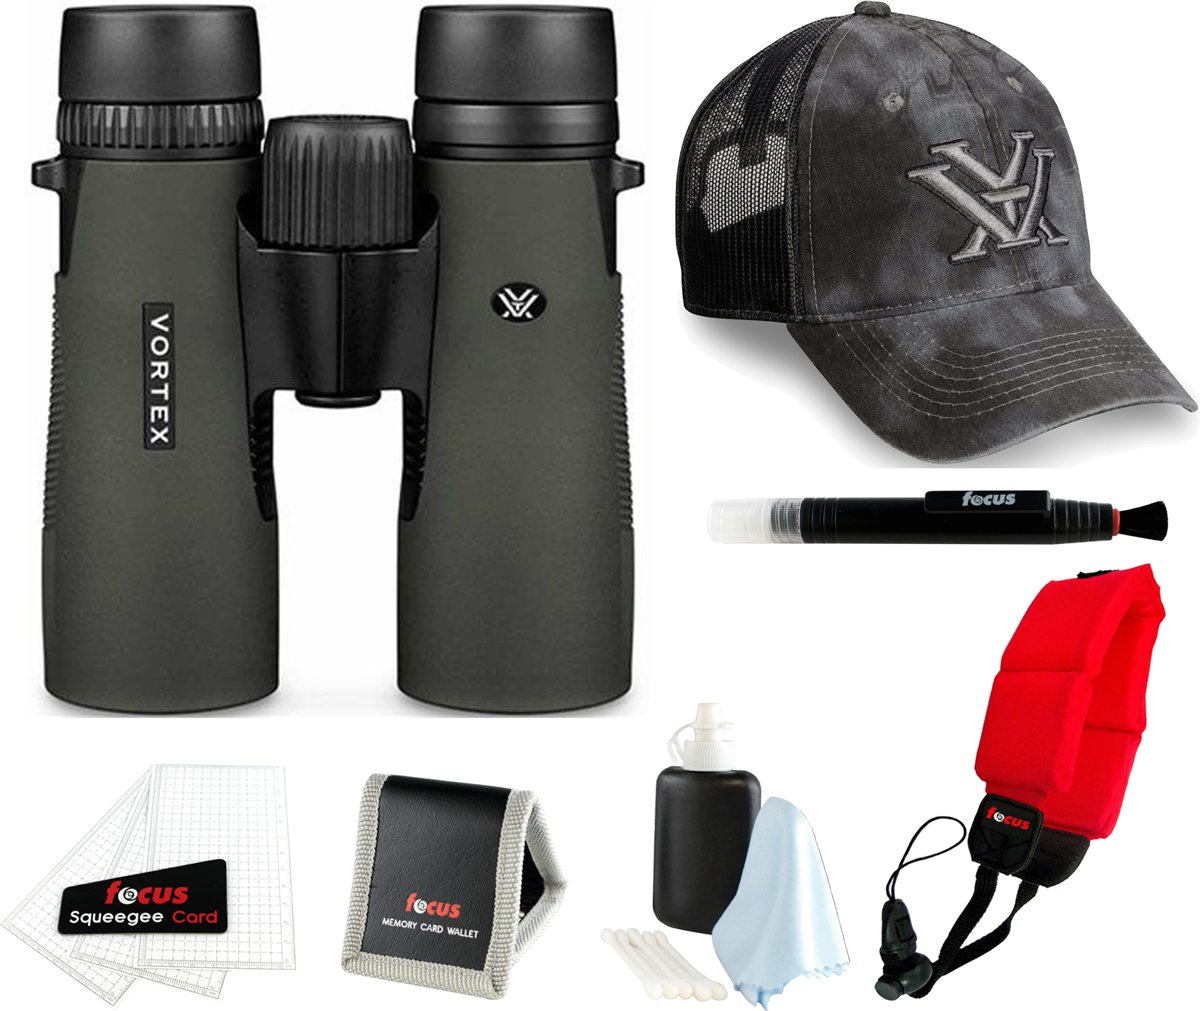 Vortex Diamondback 8x32 Binocular w/ Foam Float Strap & Accessory Bundle